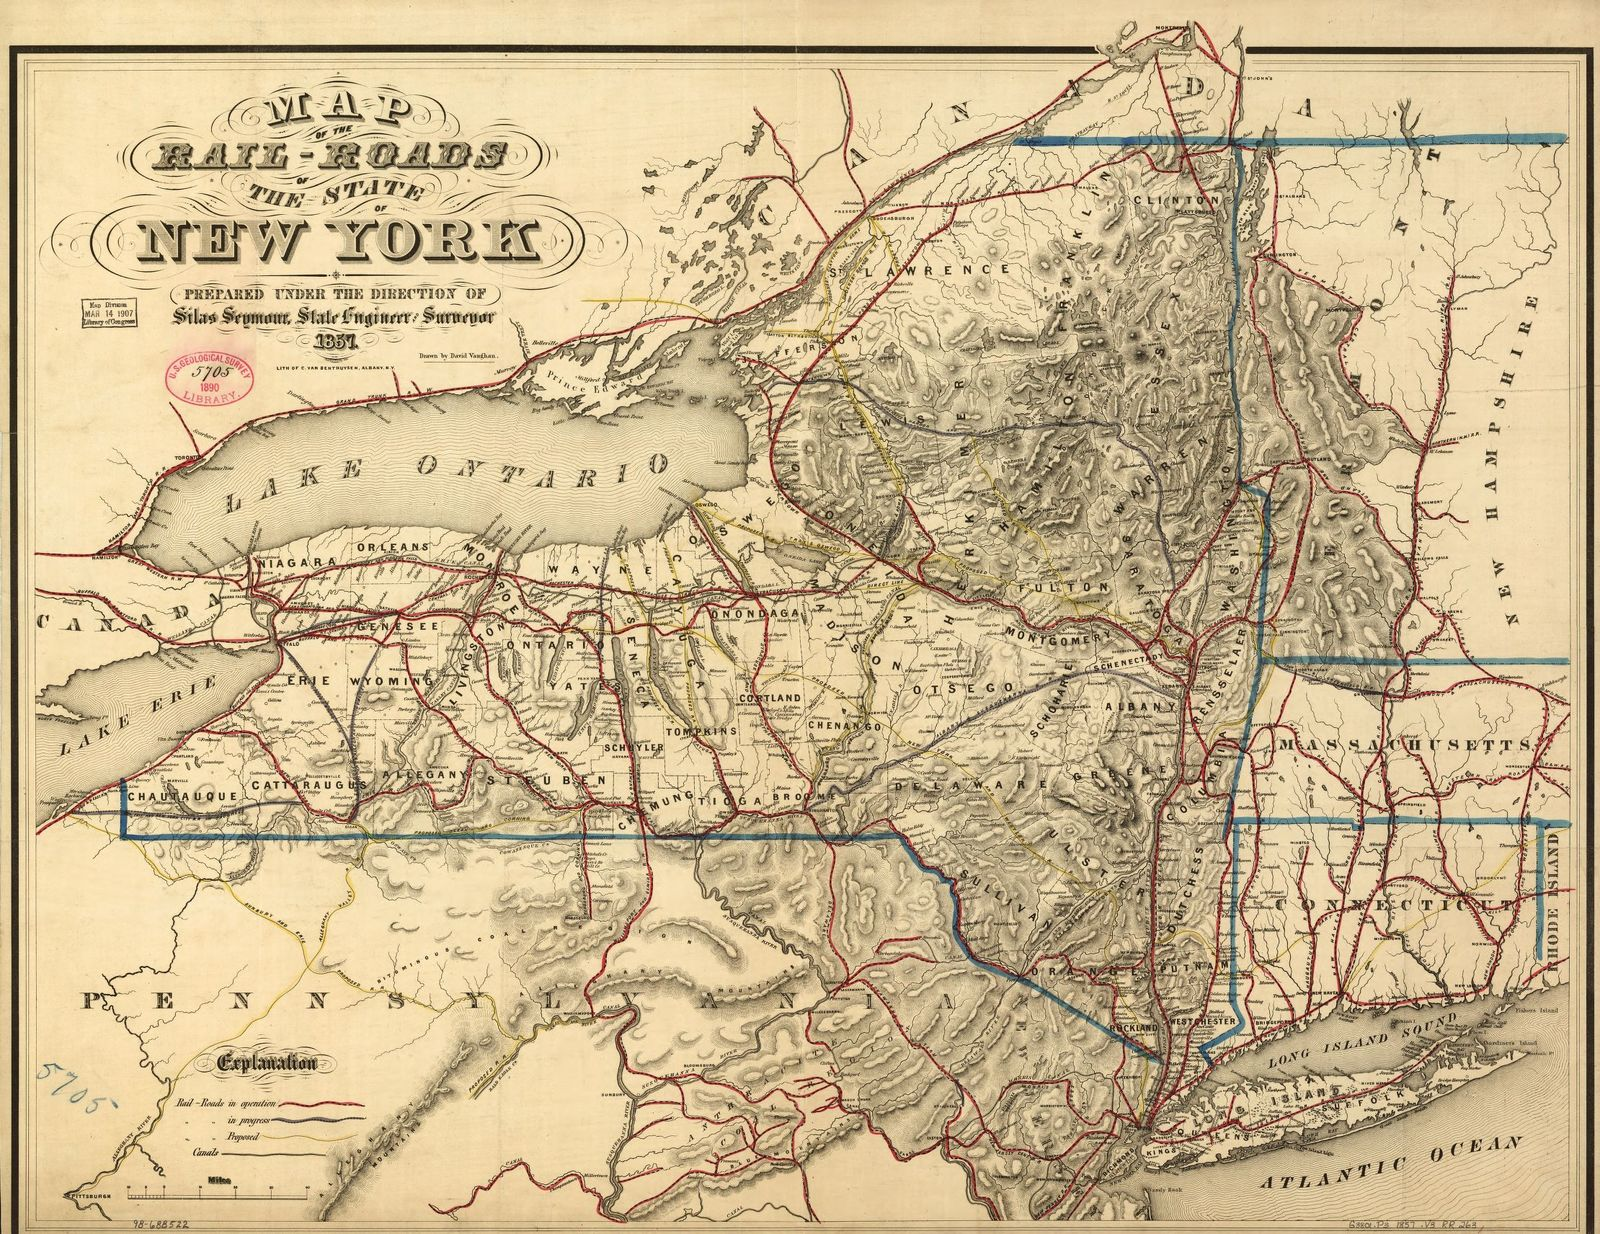 Map of the rail-roads of the state of New York prepared under the direction of Silas Seymour, state engineer surveyor.